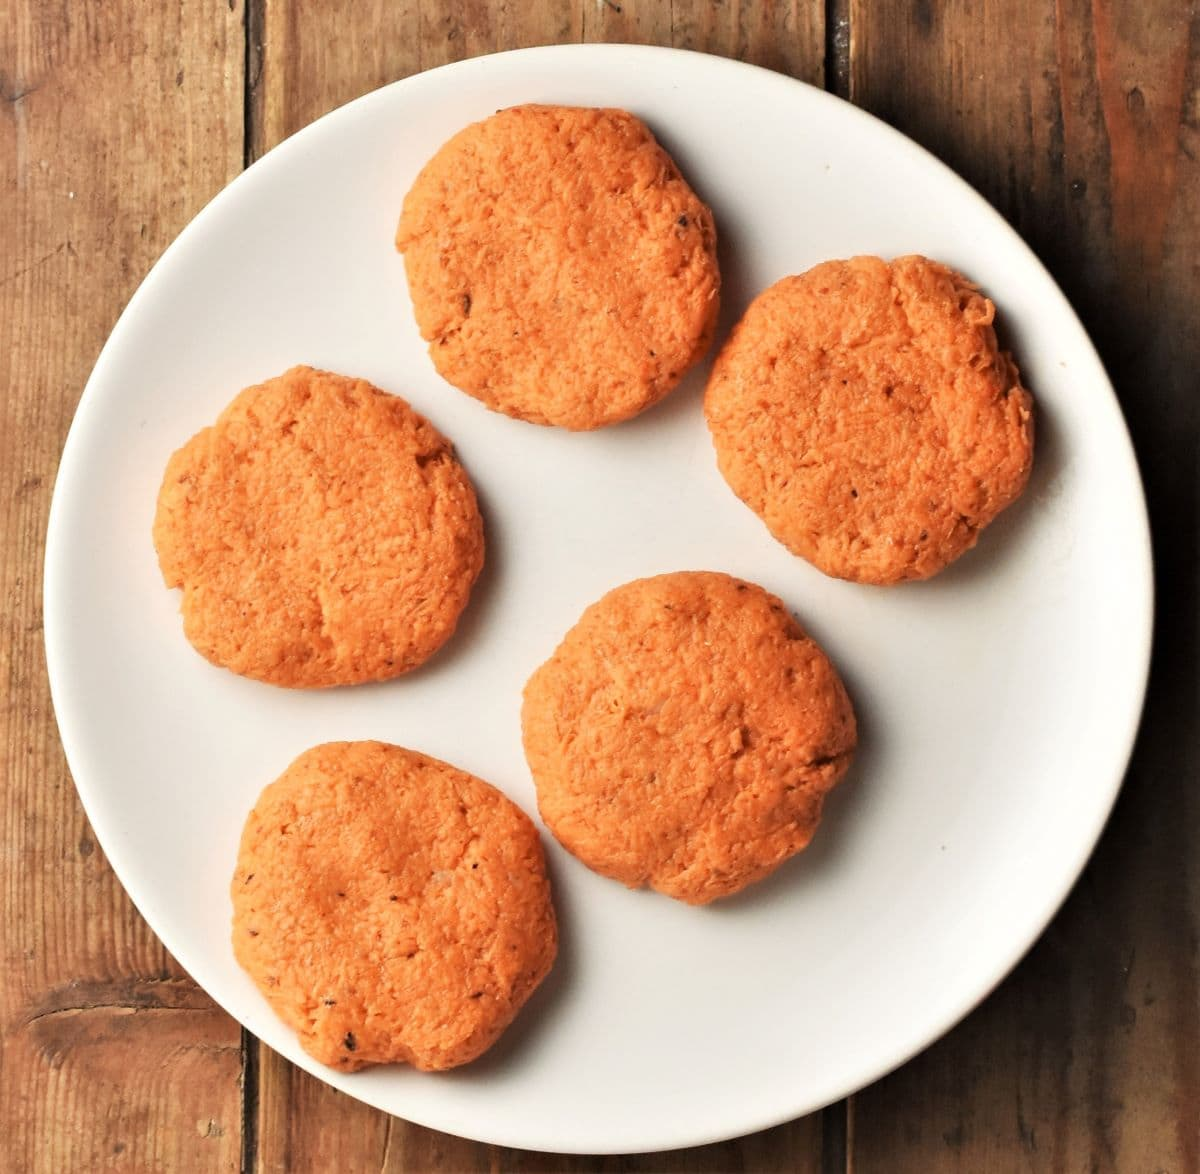 5 uncooked sweet potato cakes on top of white plate.